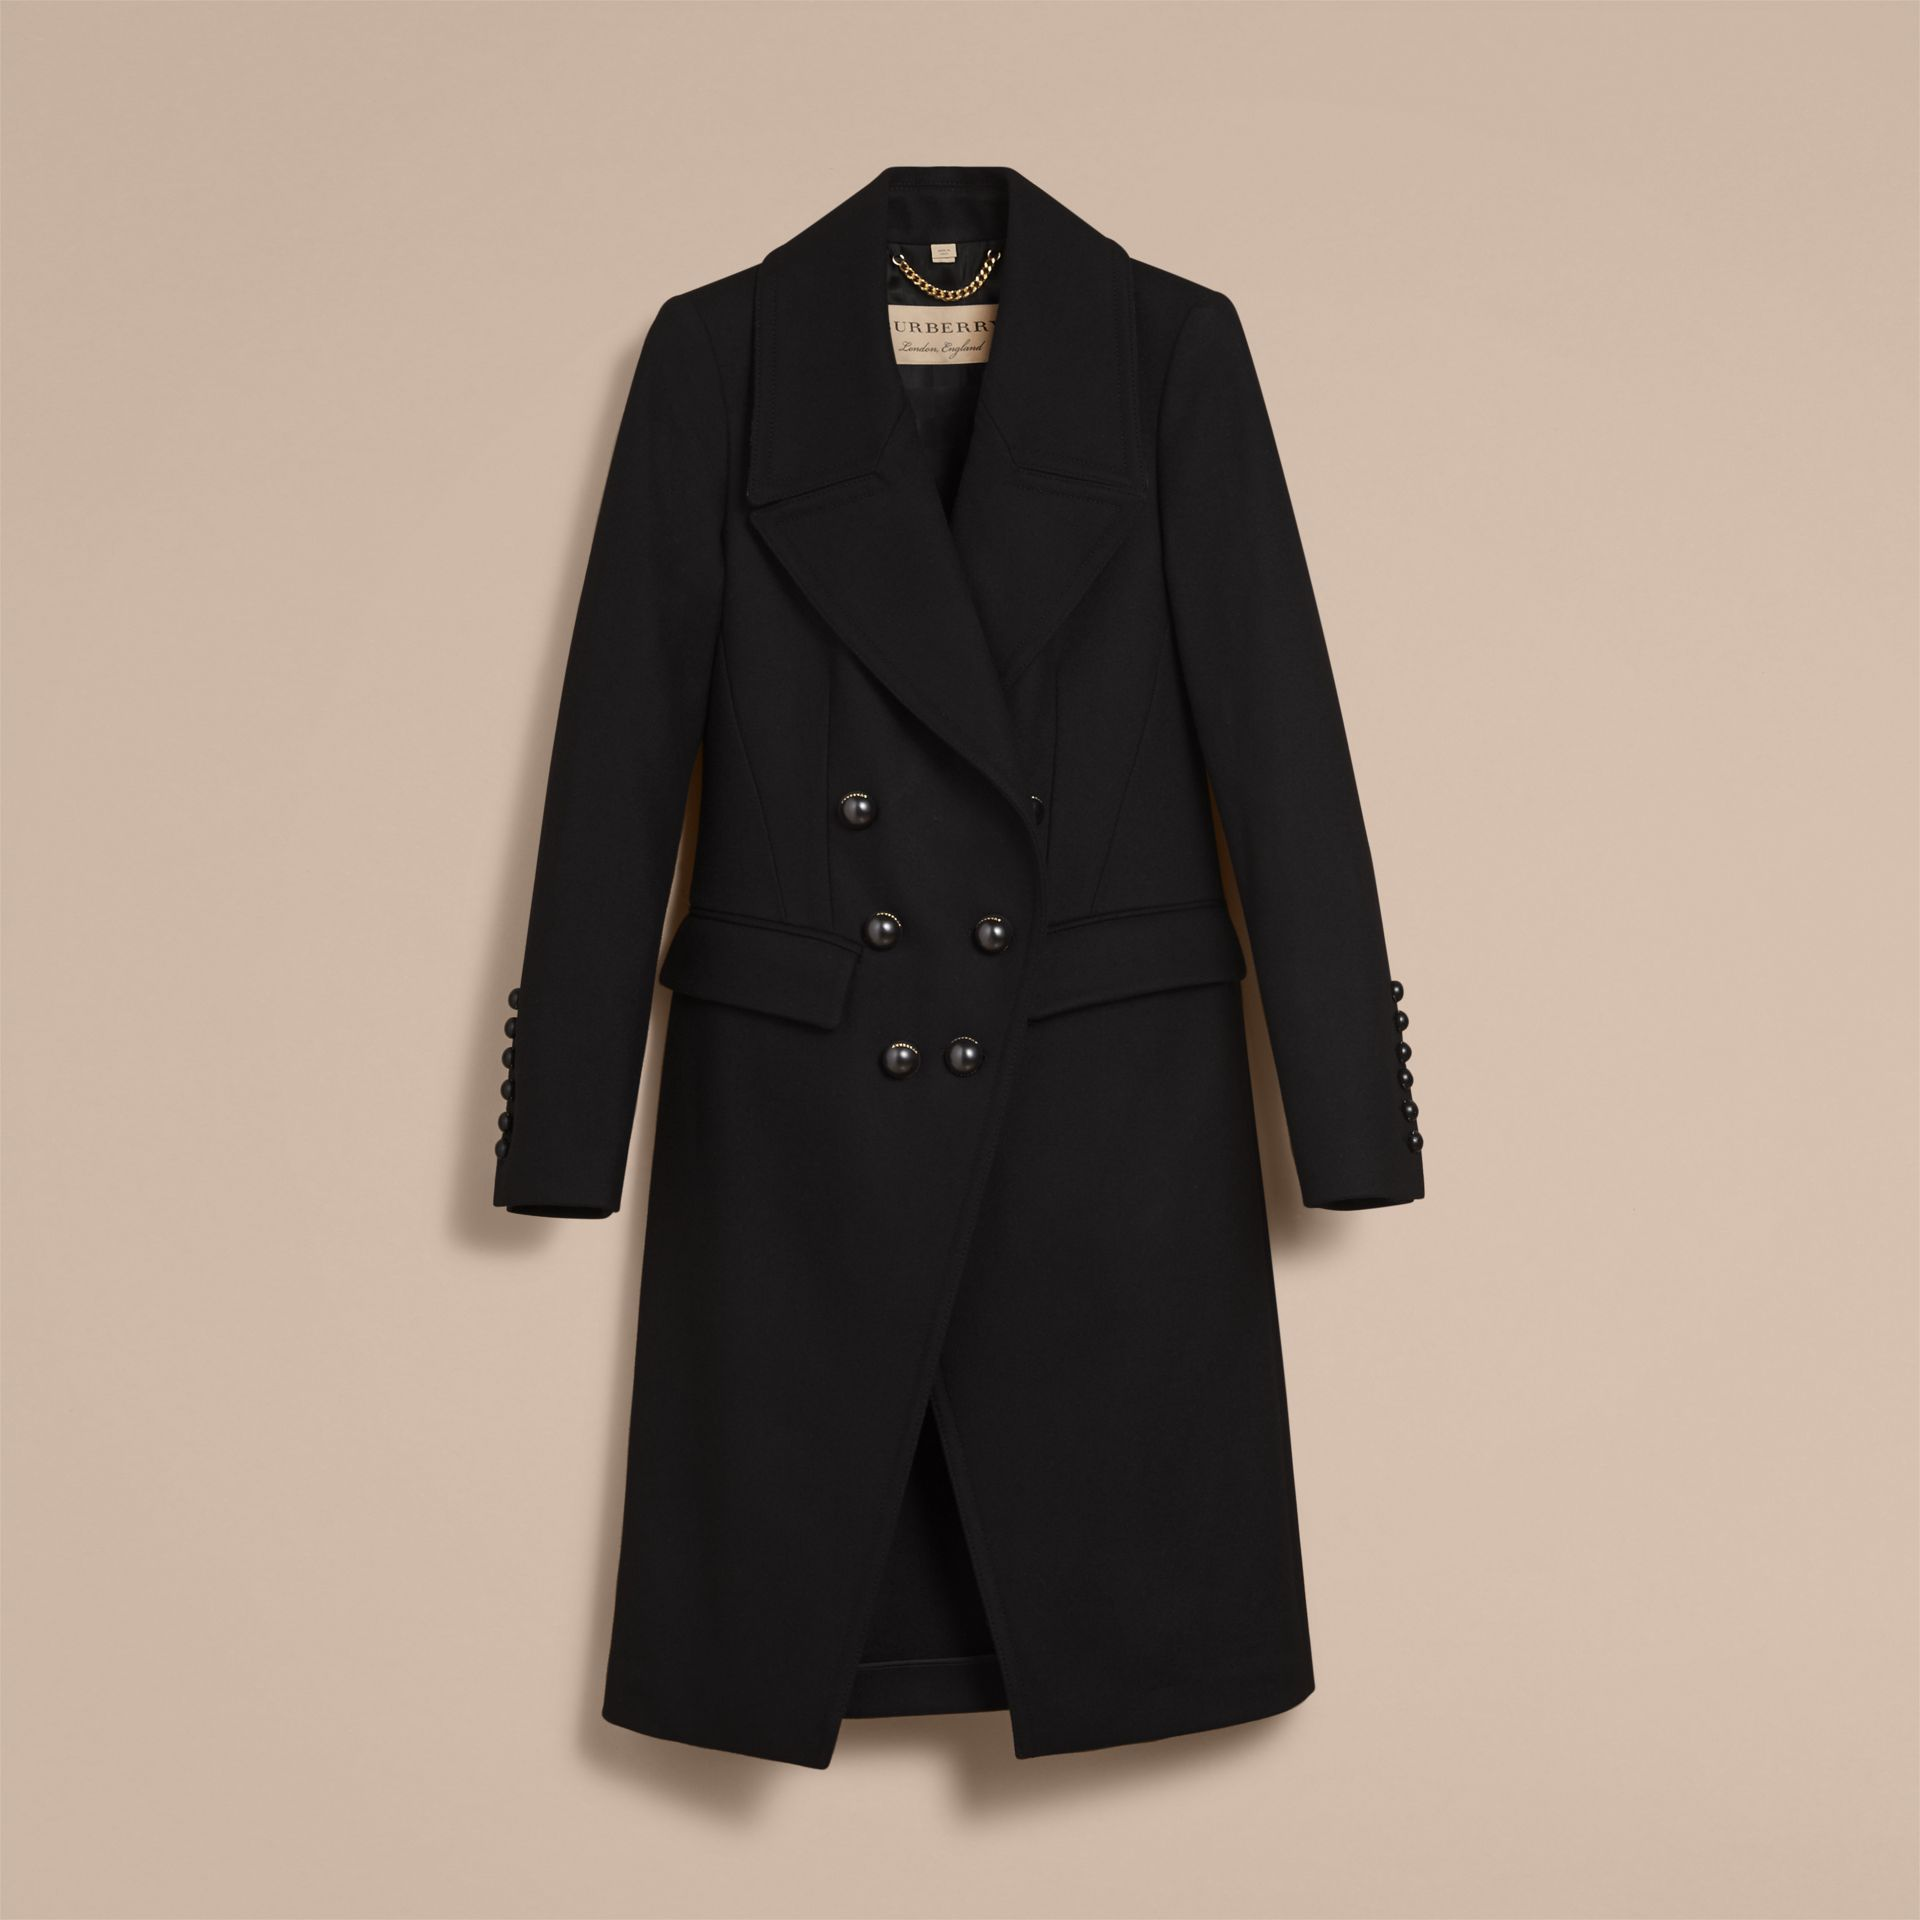 Wool Blend Double-breasted Coat in Black - Women | Burberry - gallery image 4